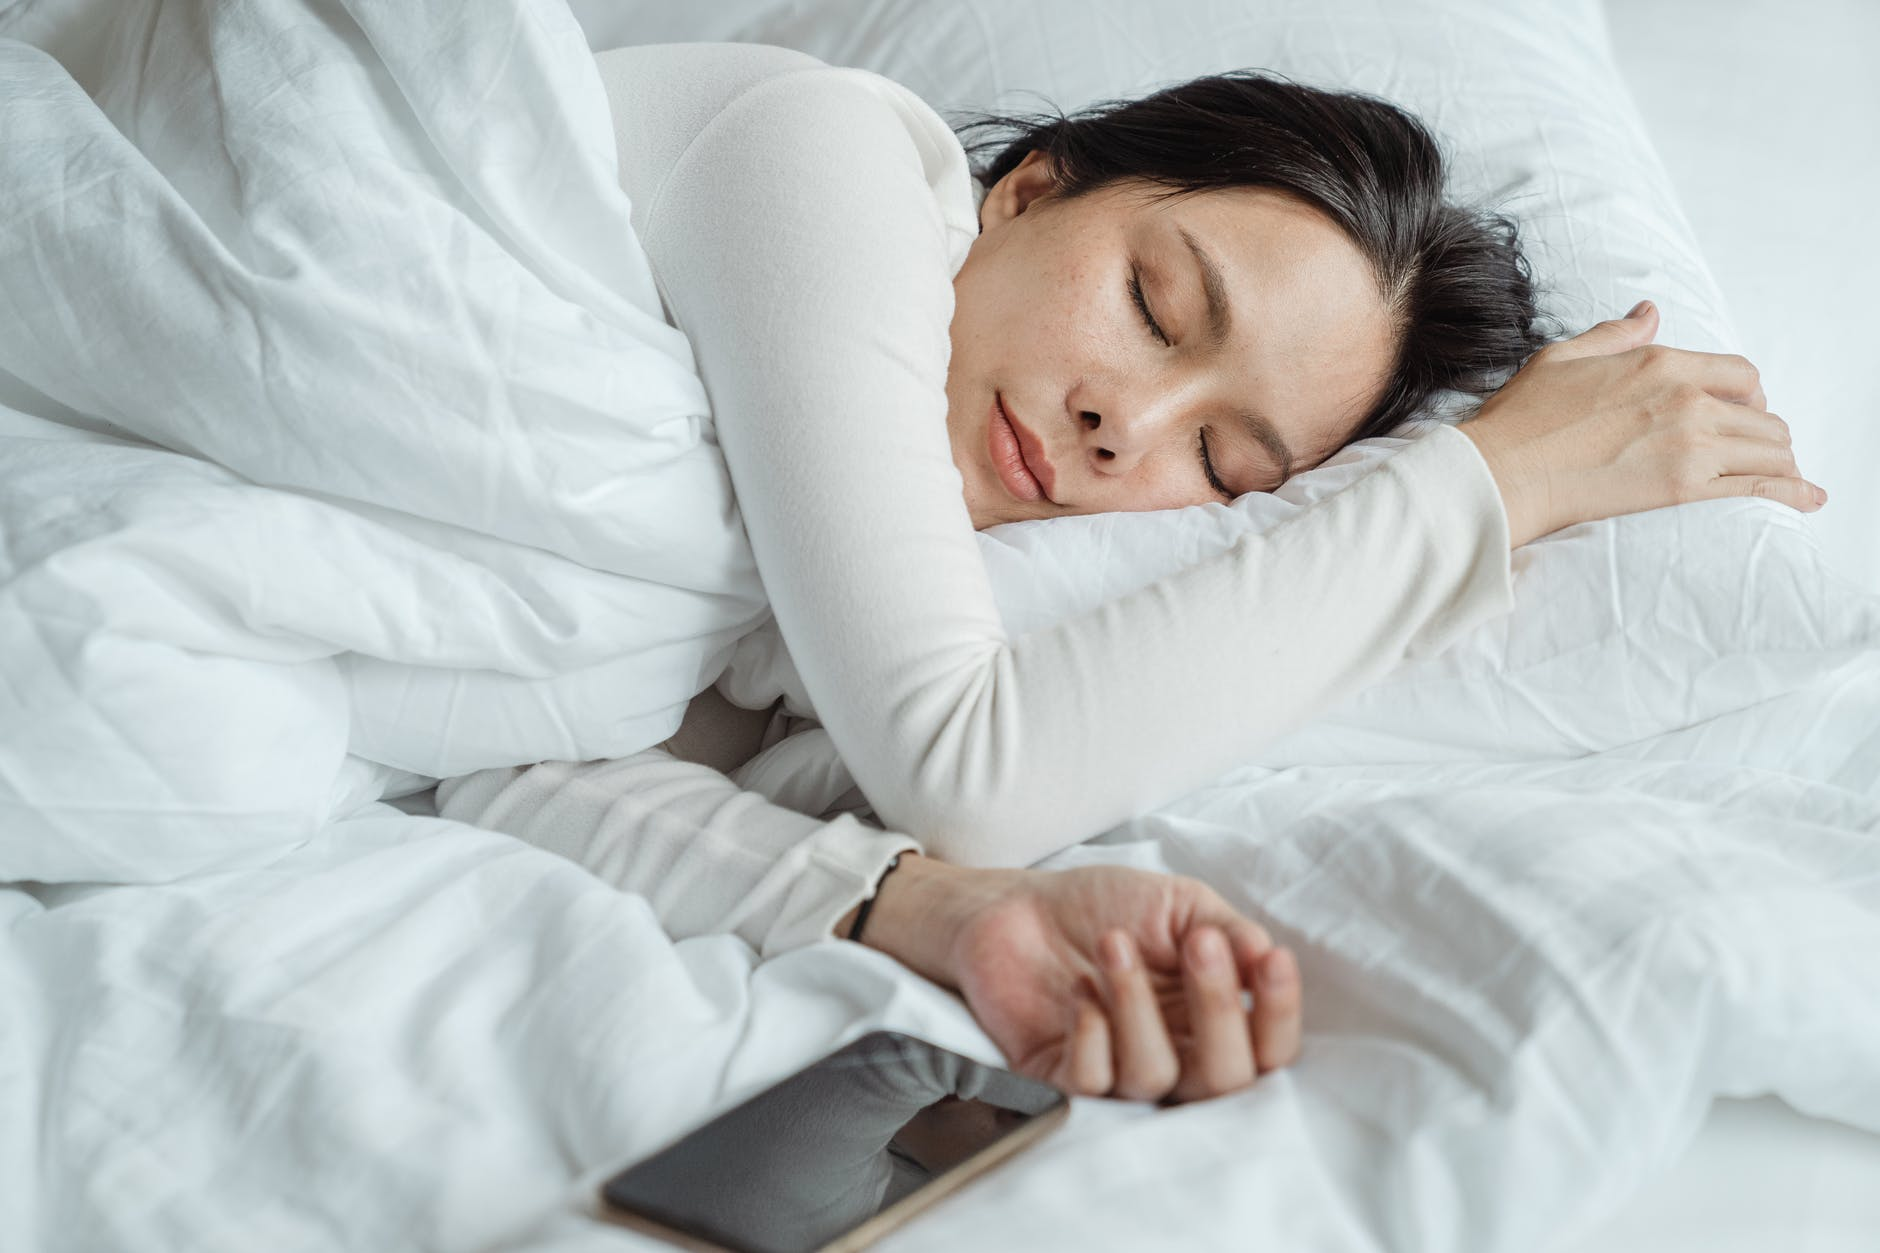 7 Products to Help You Sleep Better